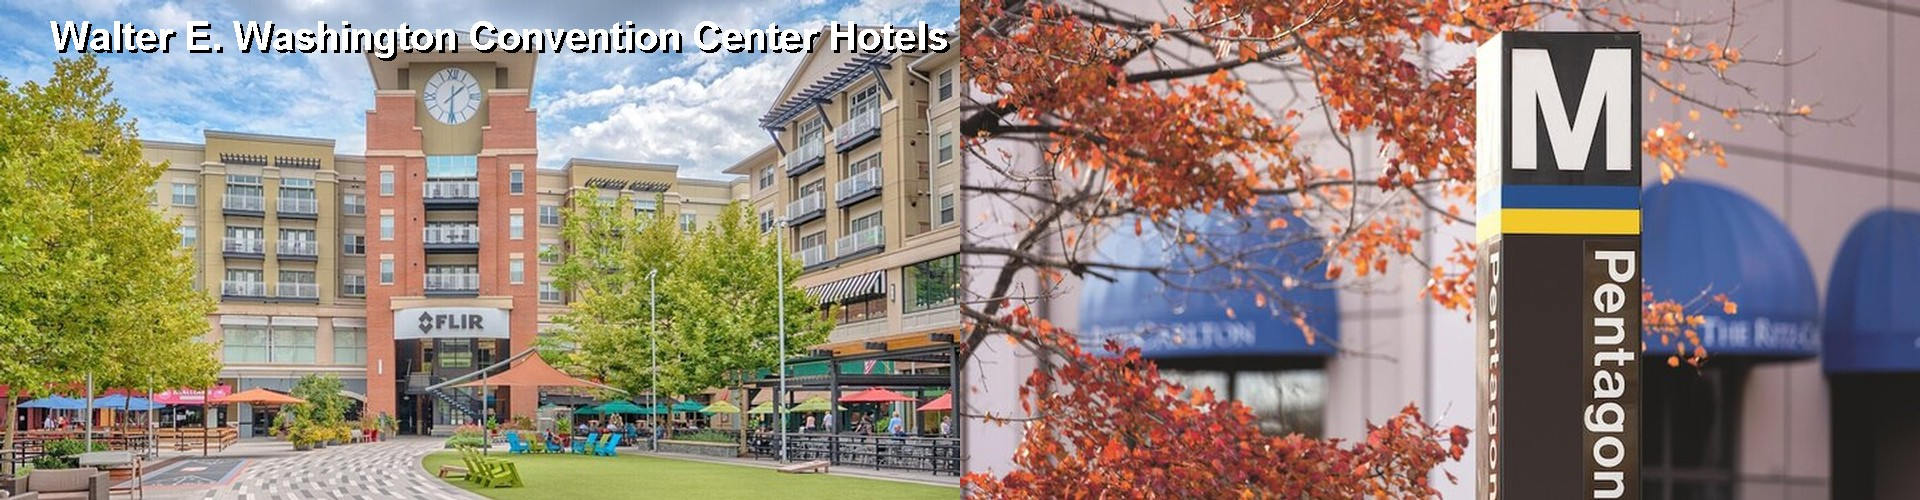 5 Best Hotels near Walter E. Washington Convention Center